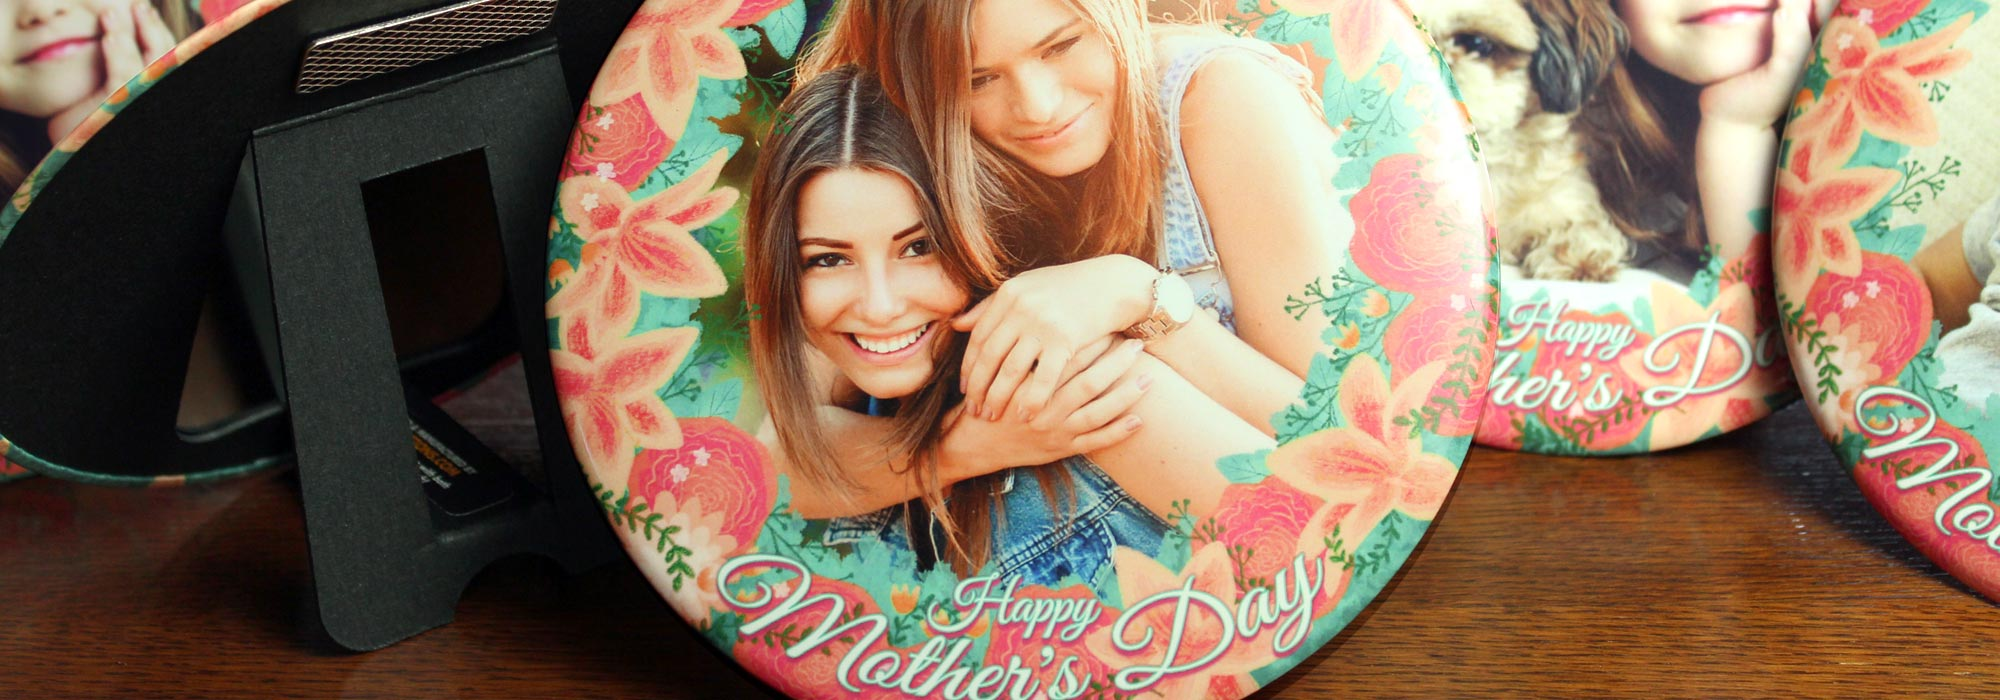 Mother's Day Photo Gifts - Personalize an affordable gift